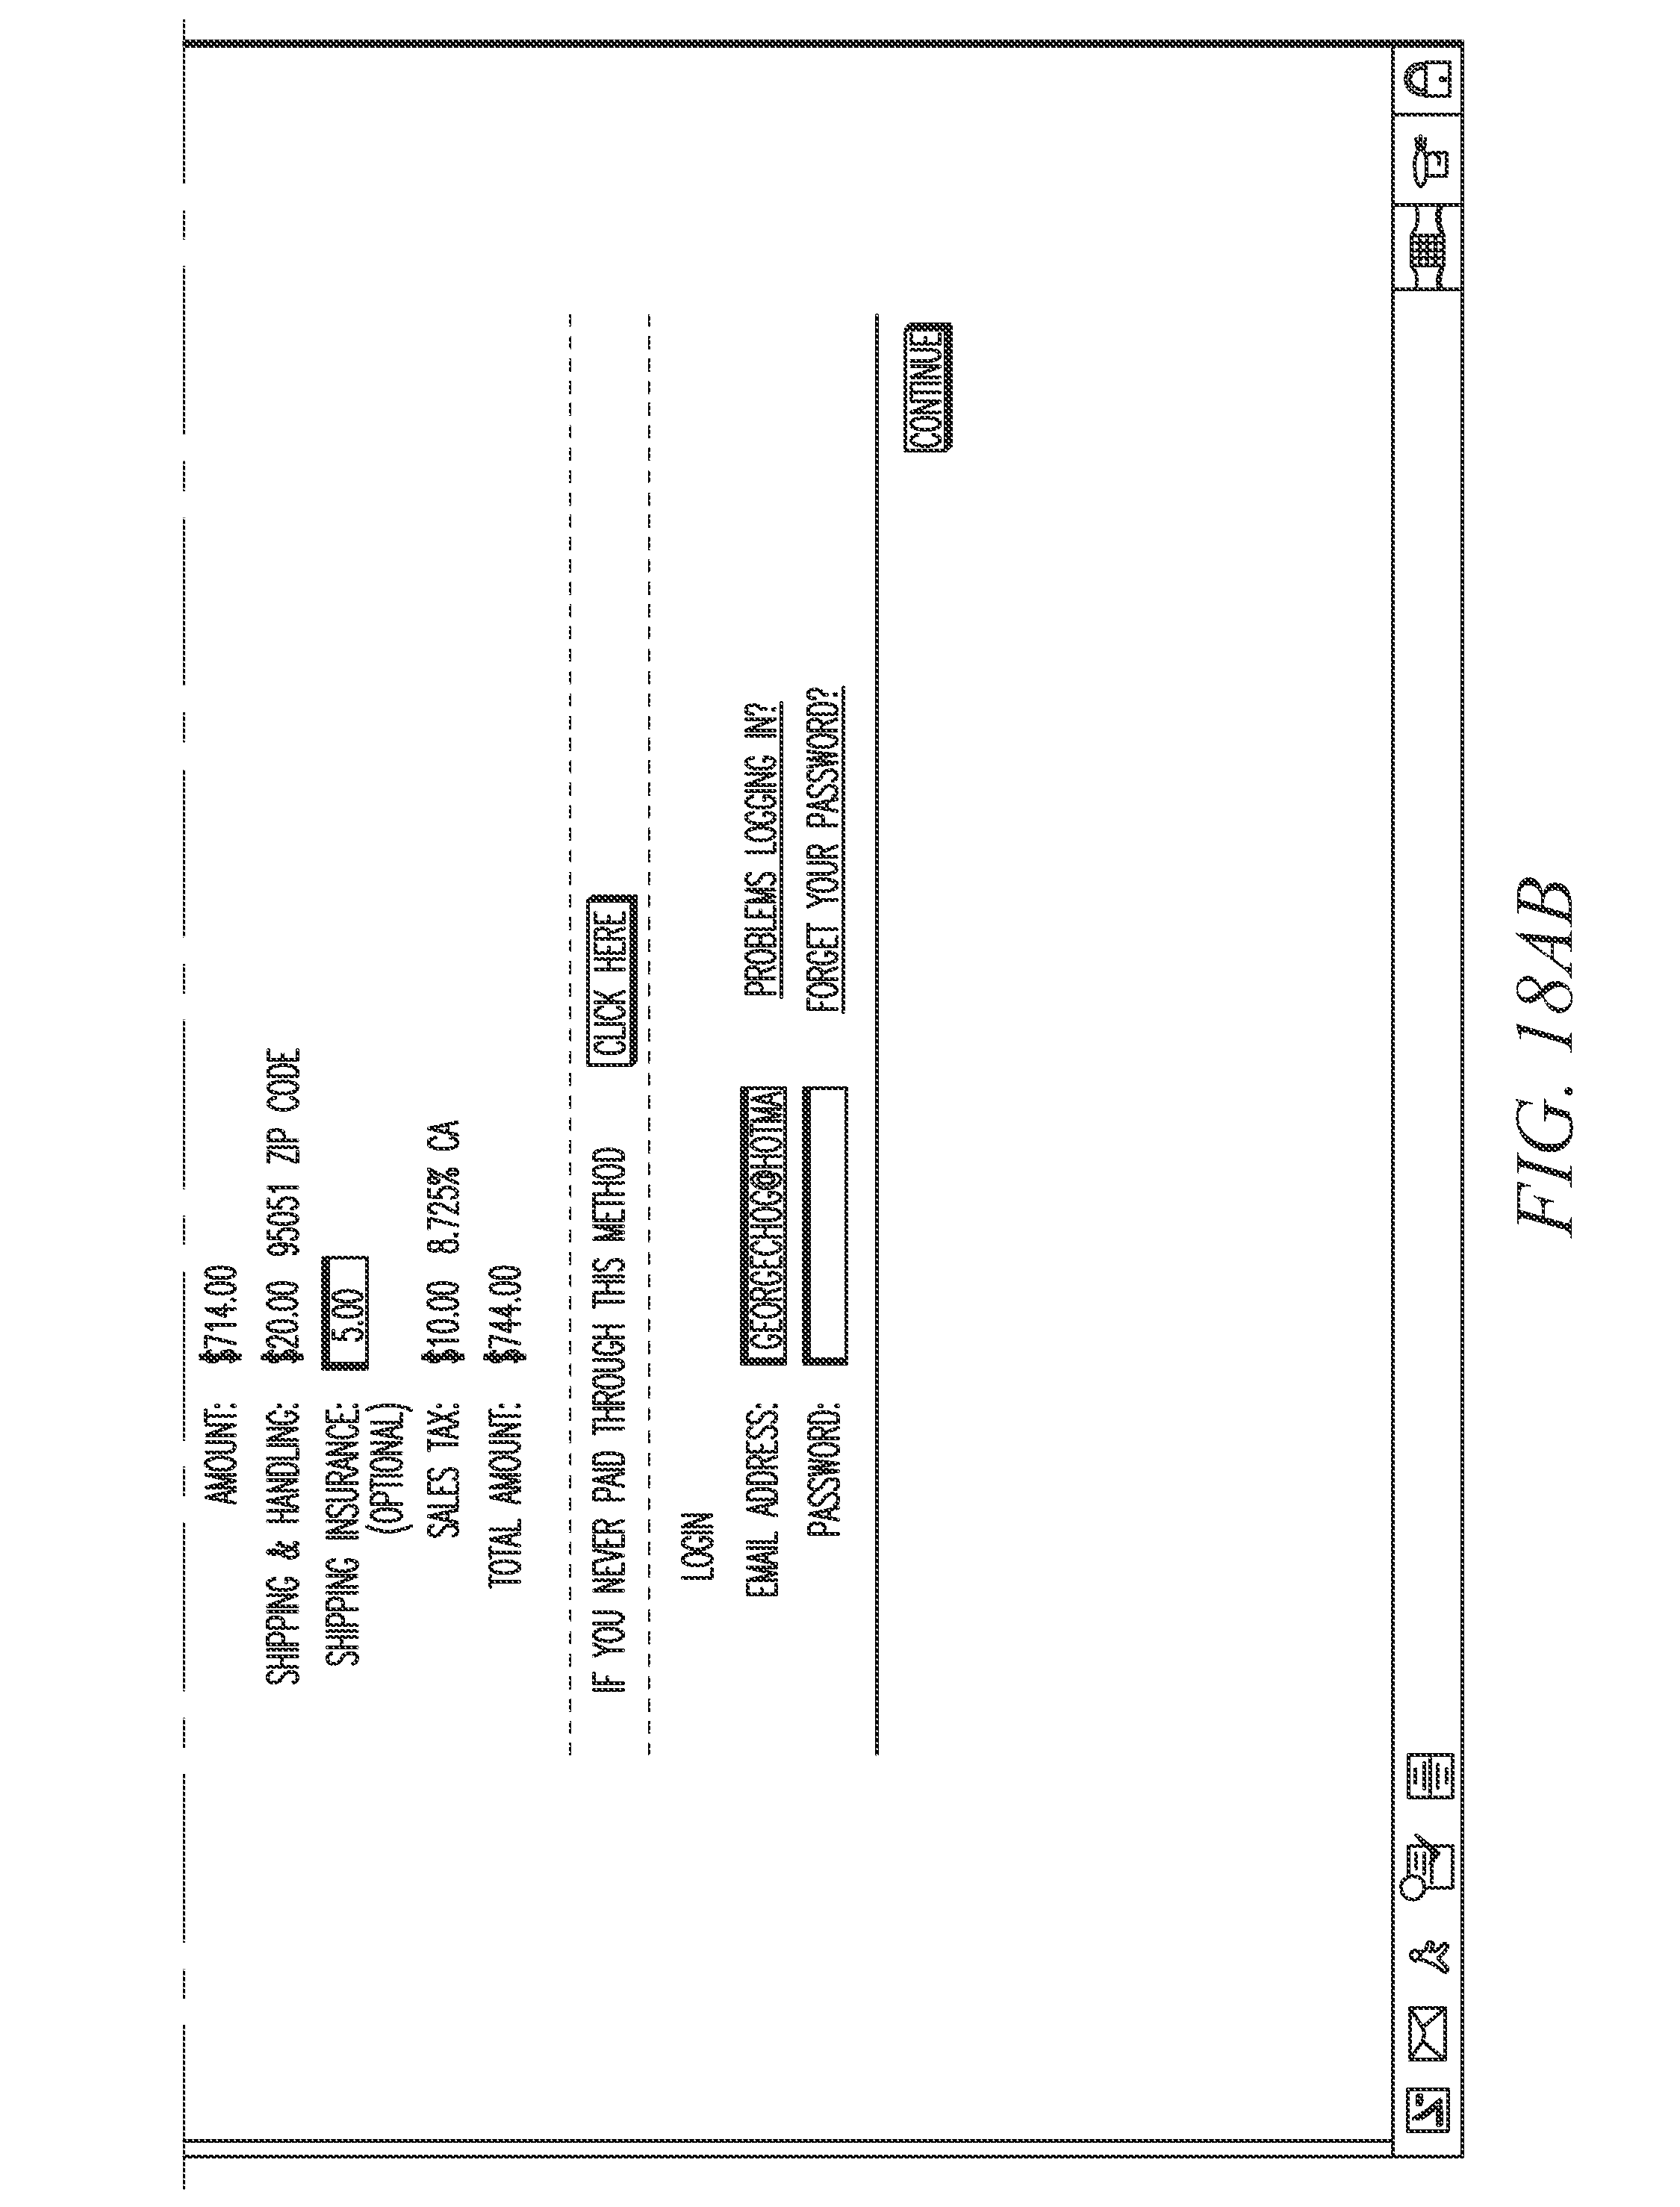 Hvac Invoices Templates Patent Us  Invoicing System  Google Patents Proforma Invoice Format Word with Personalised Invoice Pads Pdf Patent Drawing Best Small Business Invoicing Software Pdf